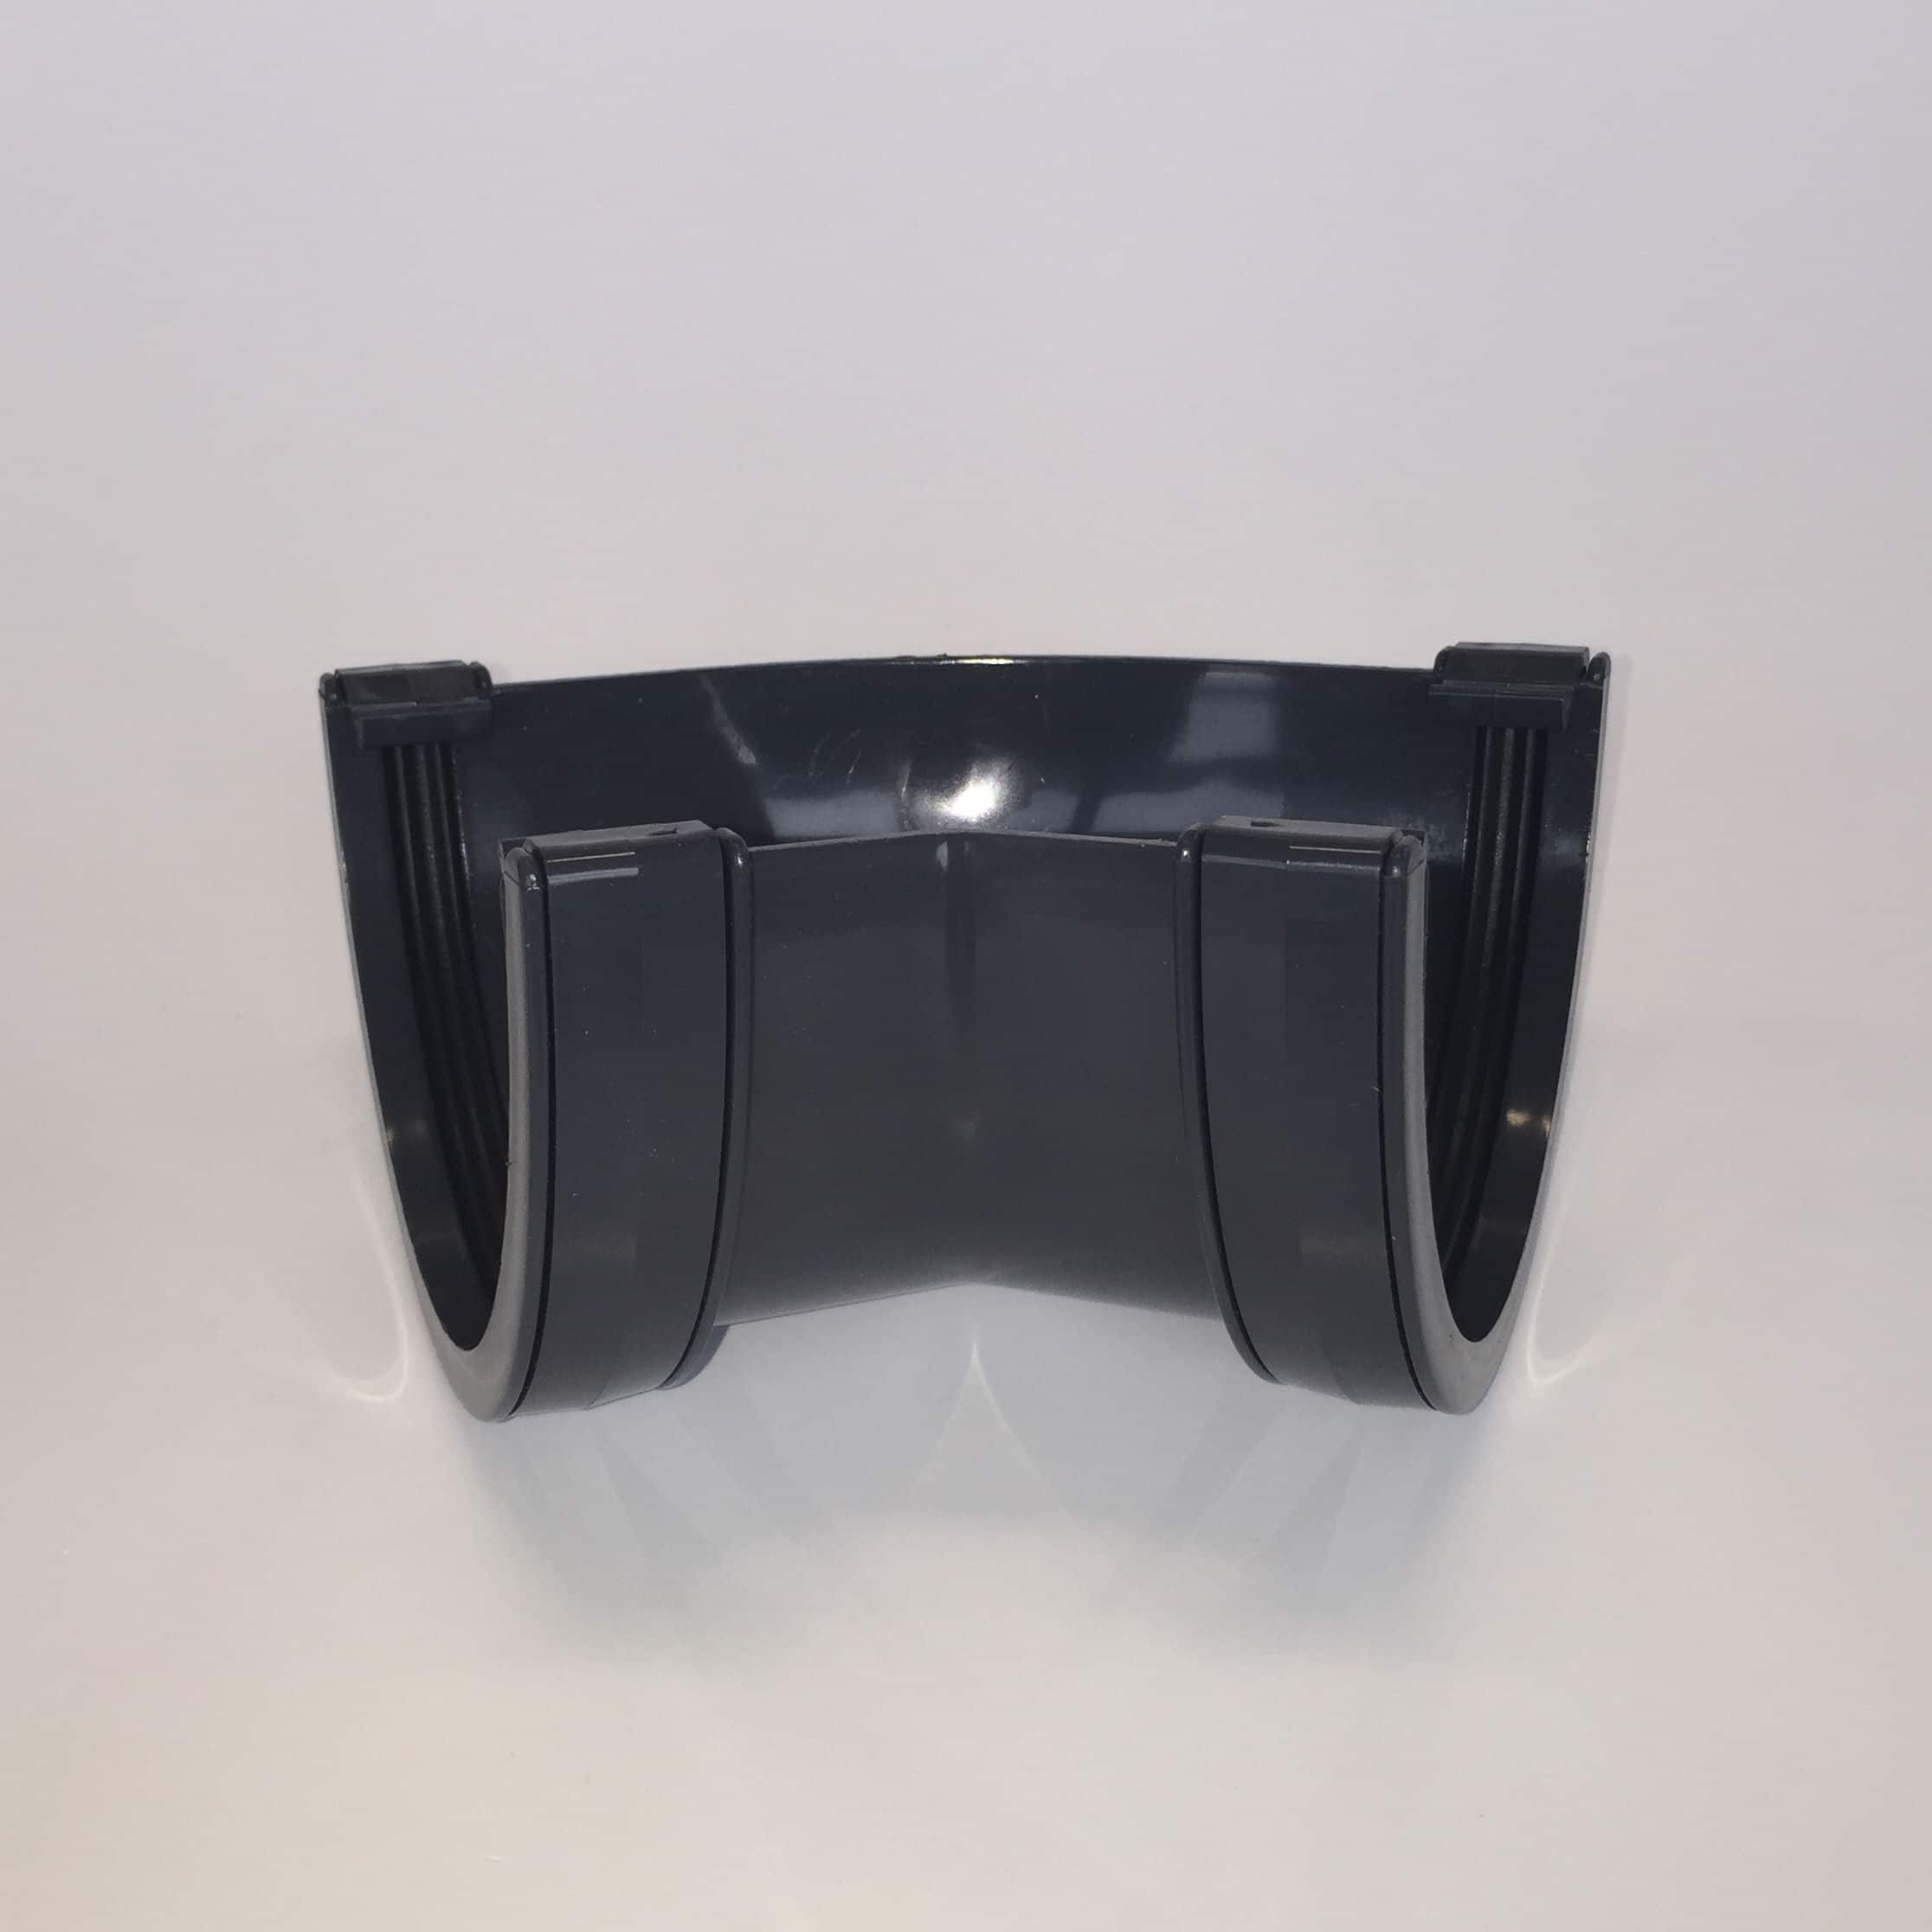 Deepstyle 135' Gutter Angle Anthracite